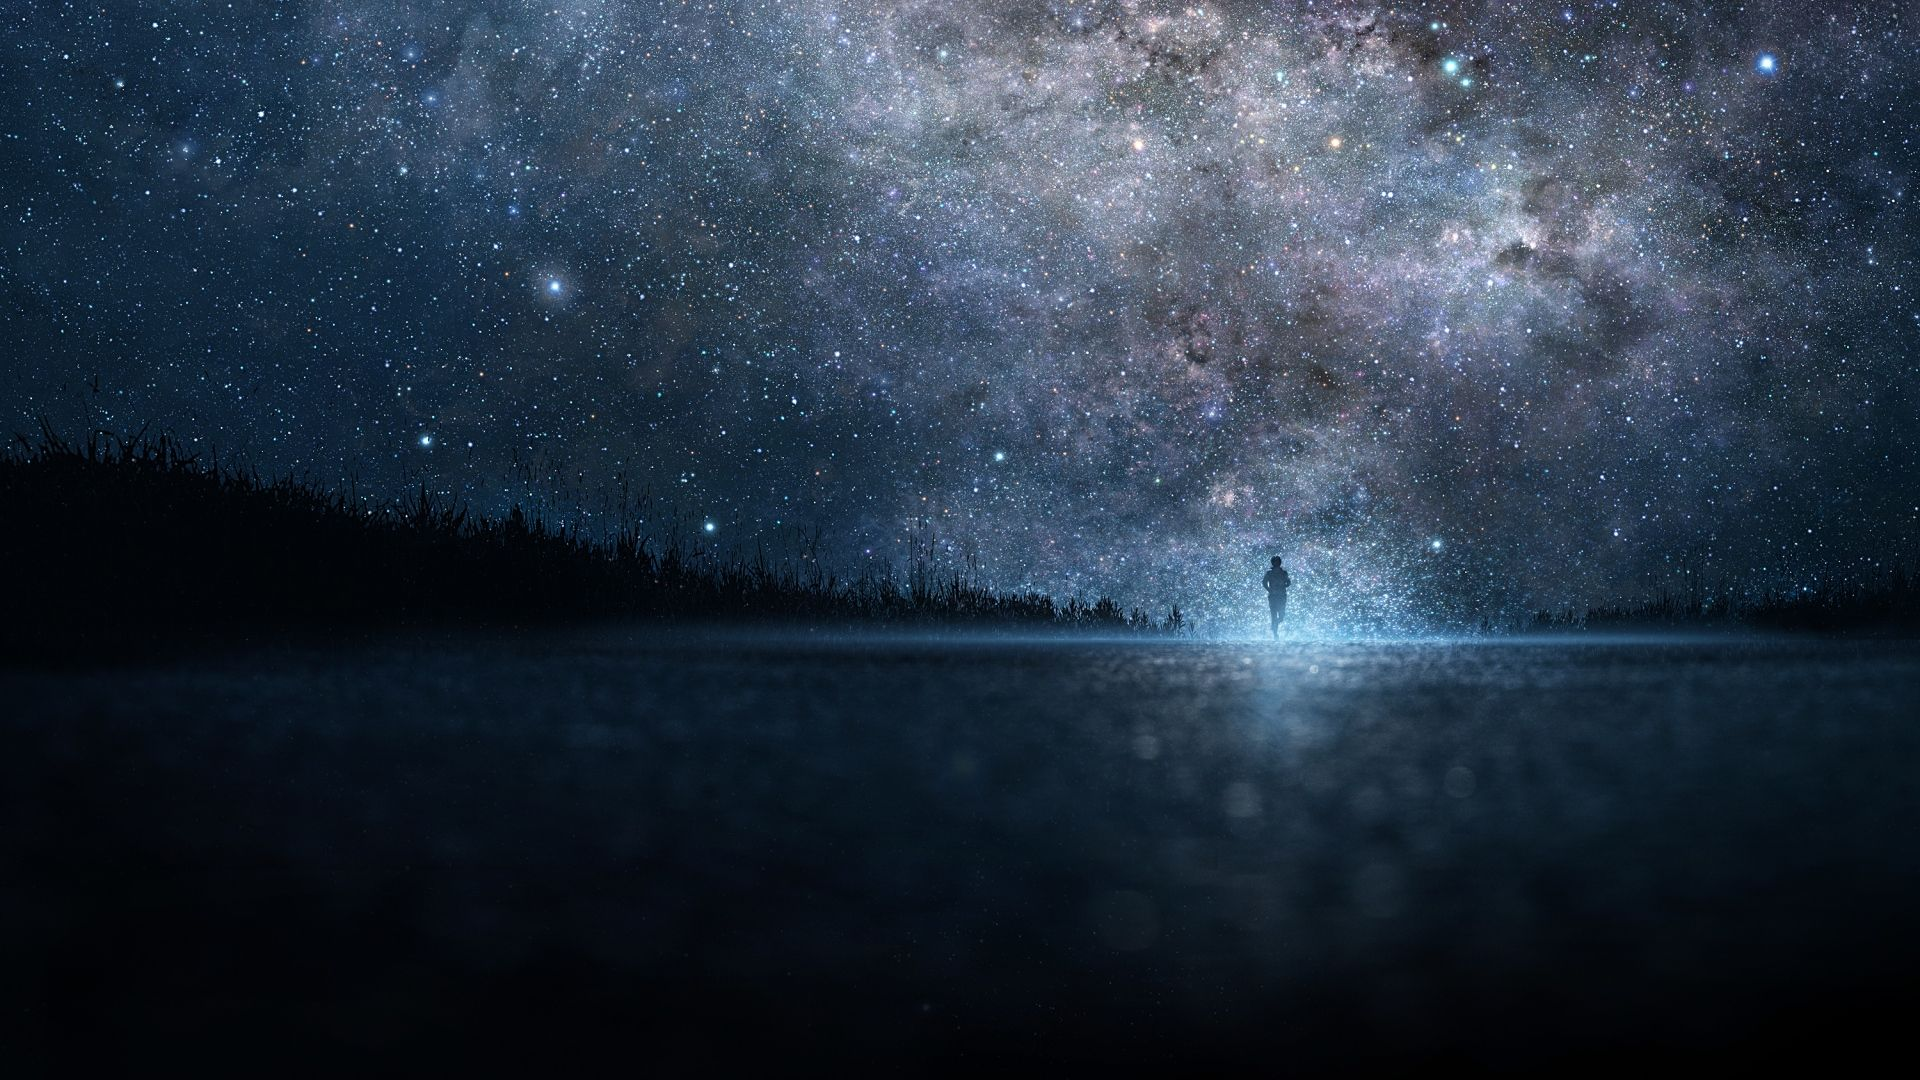 1920x1080 Wallpaper Star Art Sky Night People Silhouette Wallpaper Space Desktop Wallpaper 1920x1080 2048x1152 Wallpapers